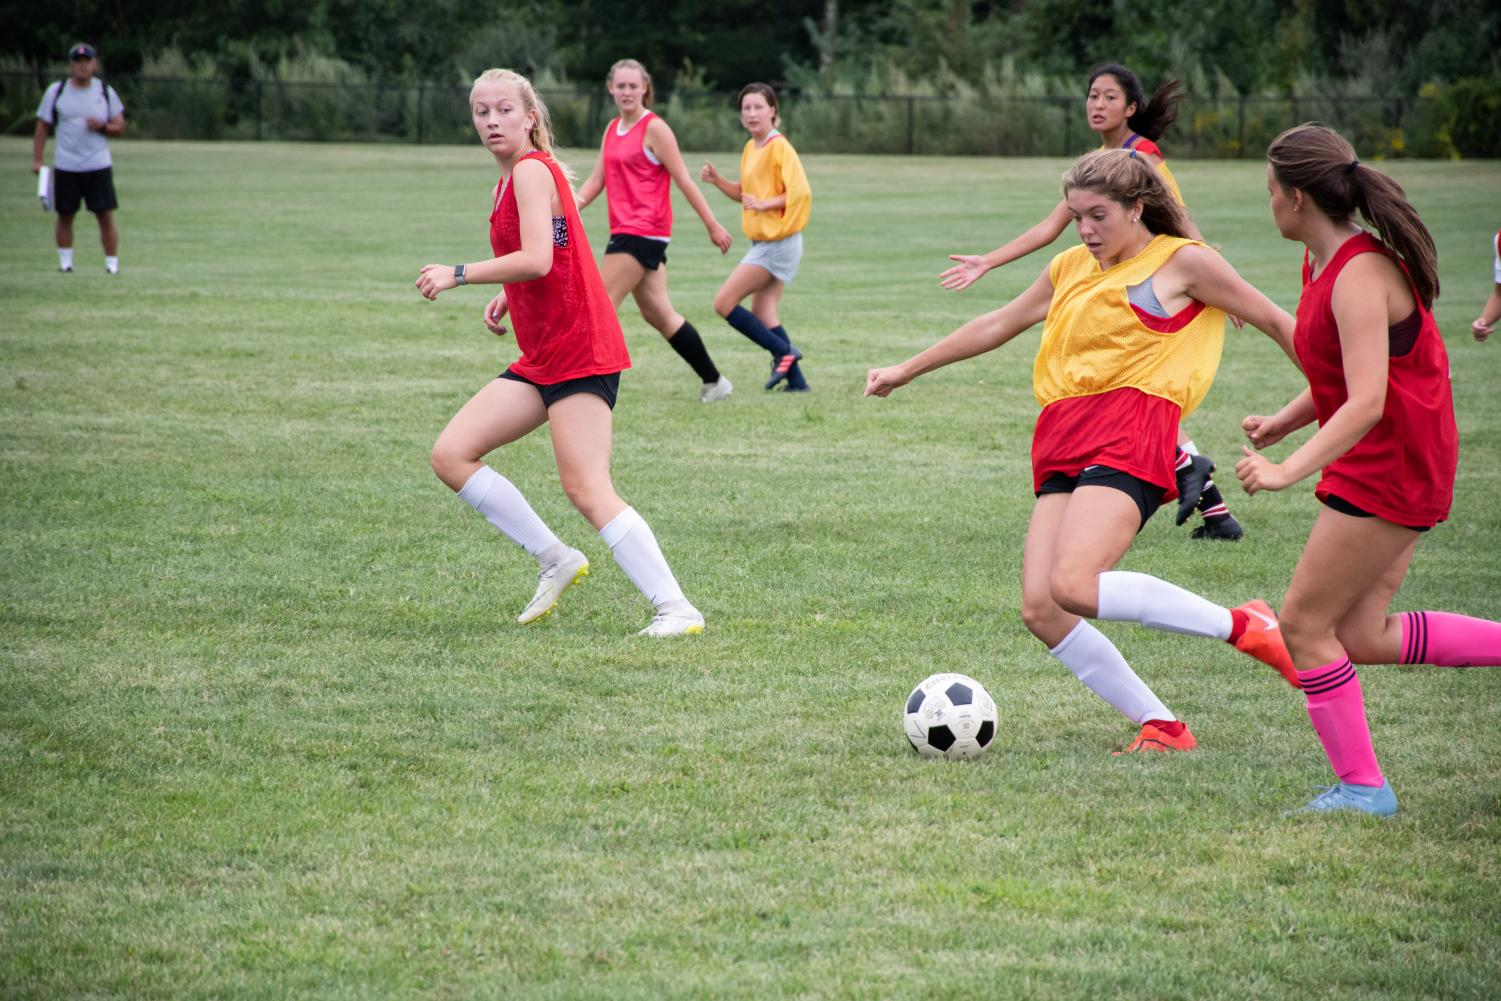 Freshman+Sadie+Candela+looks+to+advance+the+ball+through+defenders+on+both+sides+to+pass+to+her+teammates+upfield.+Candela+ended+up+making+the+varsity+team.